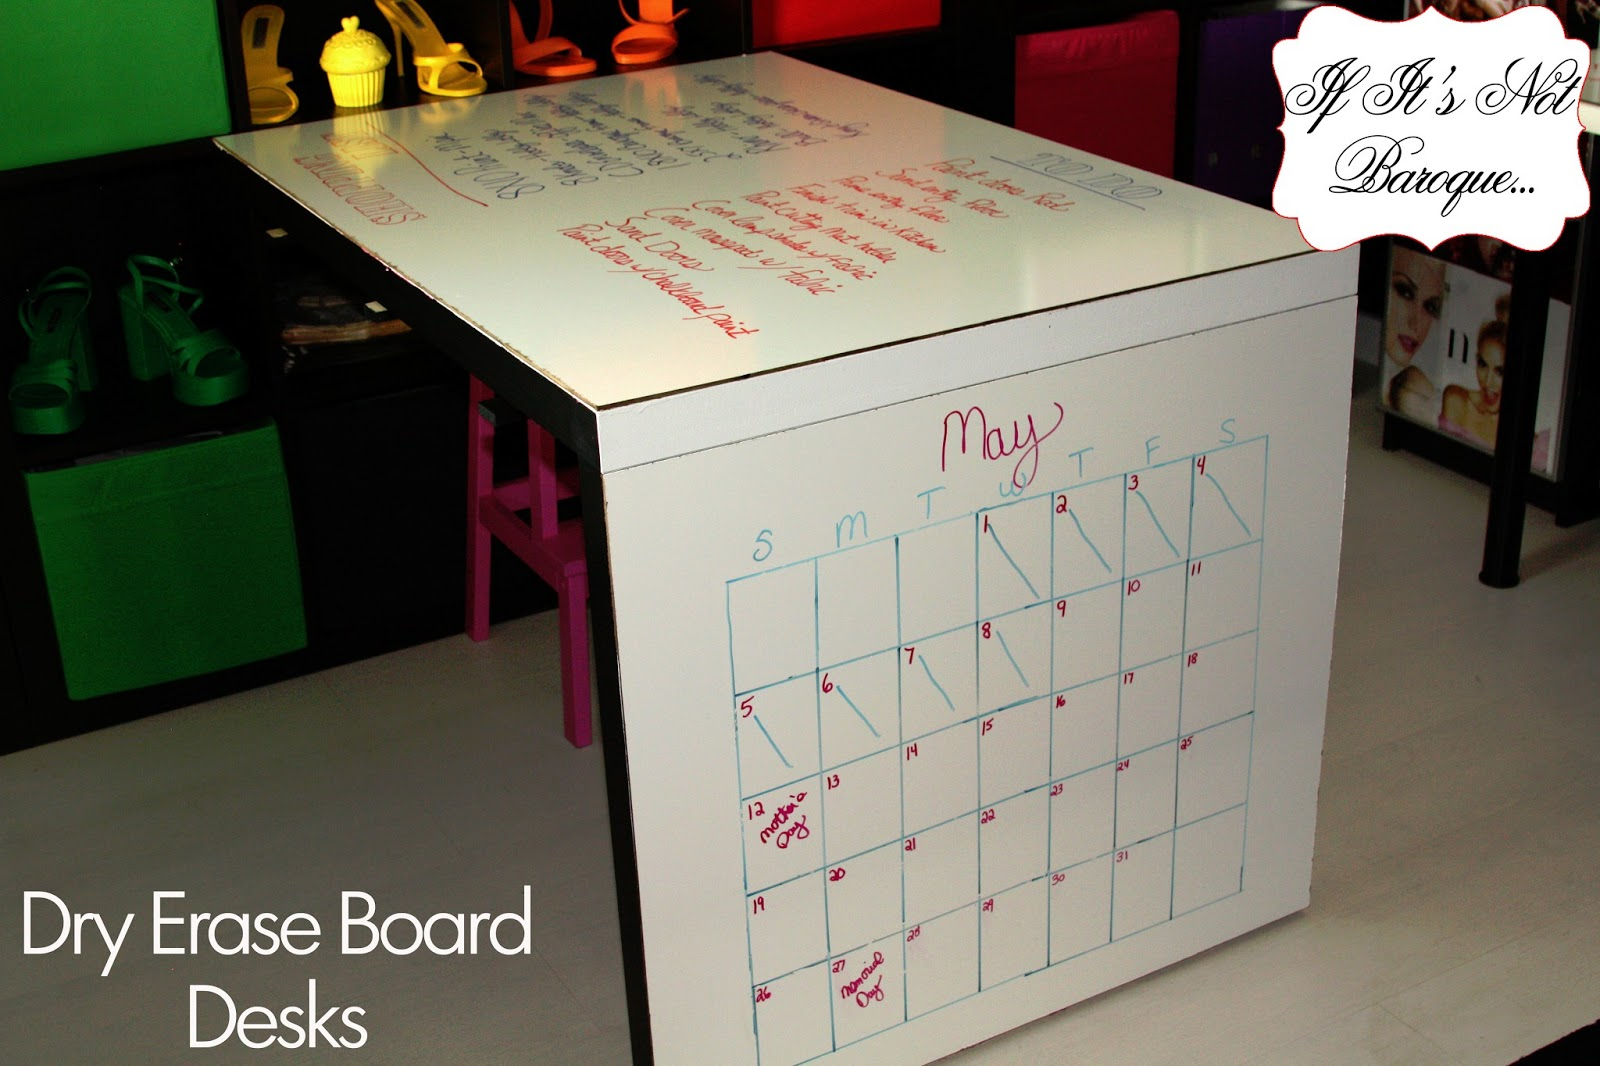 If Its Not Baroque Dry Erase Board Desks for Less